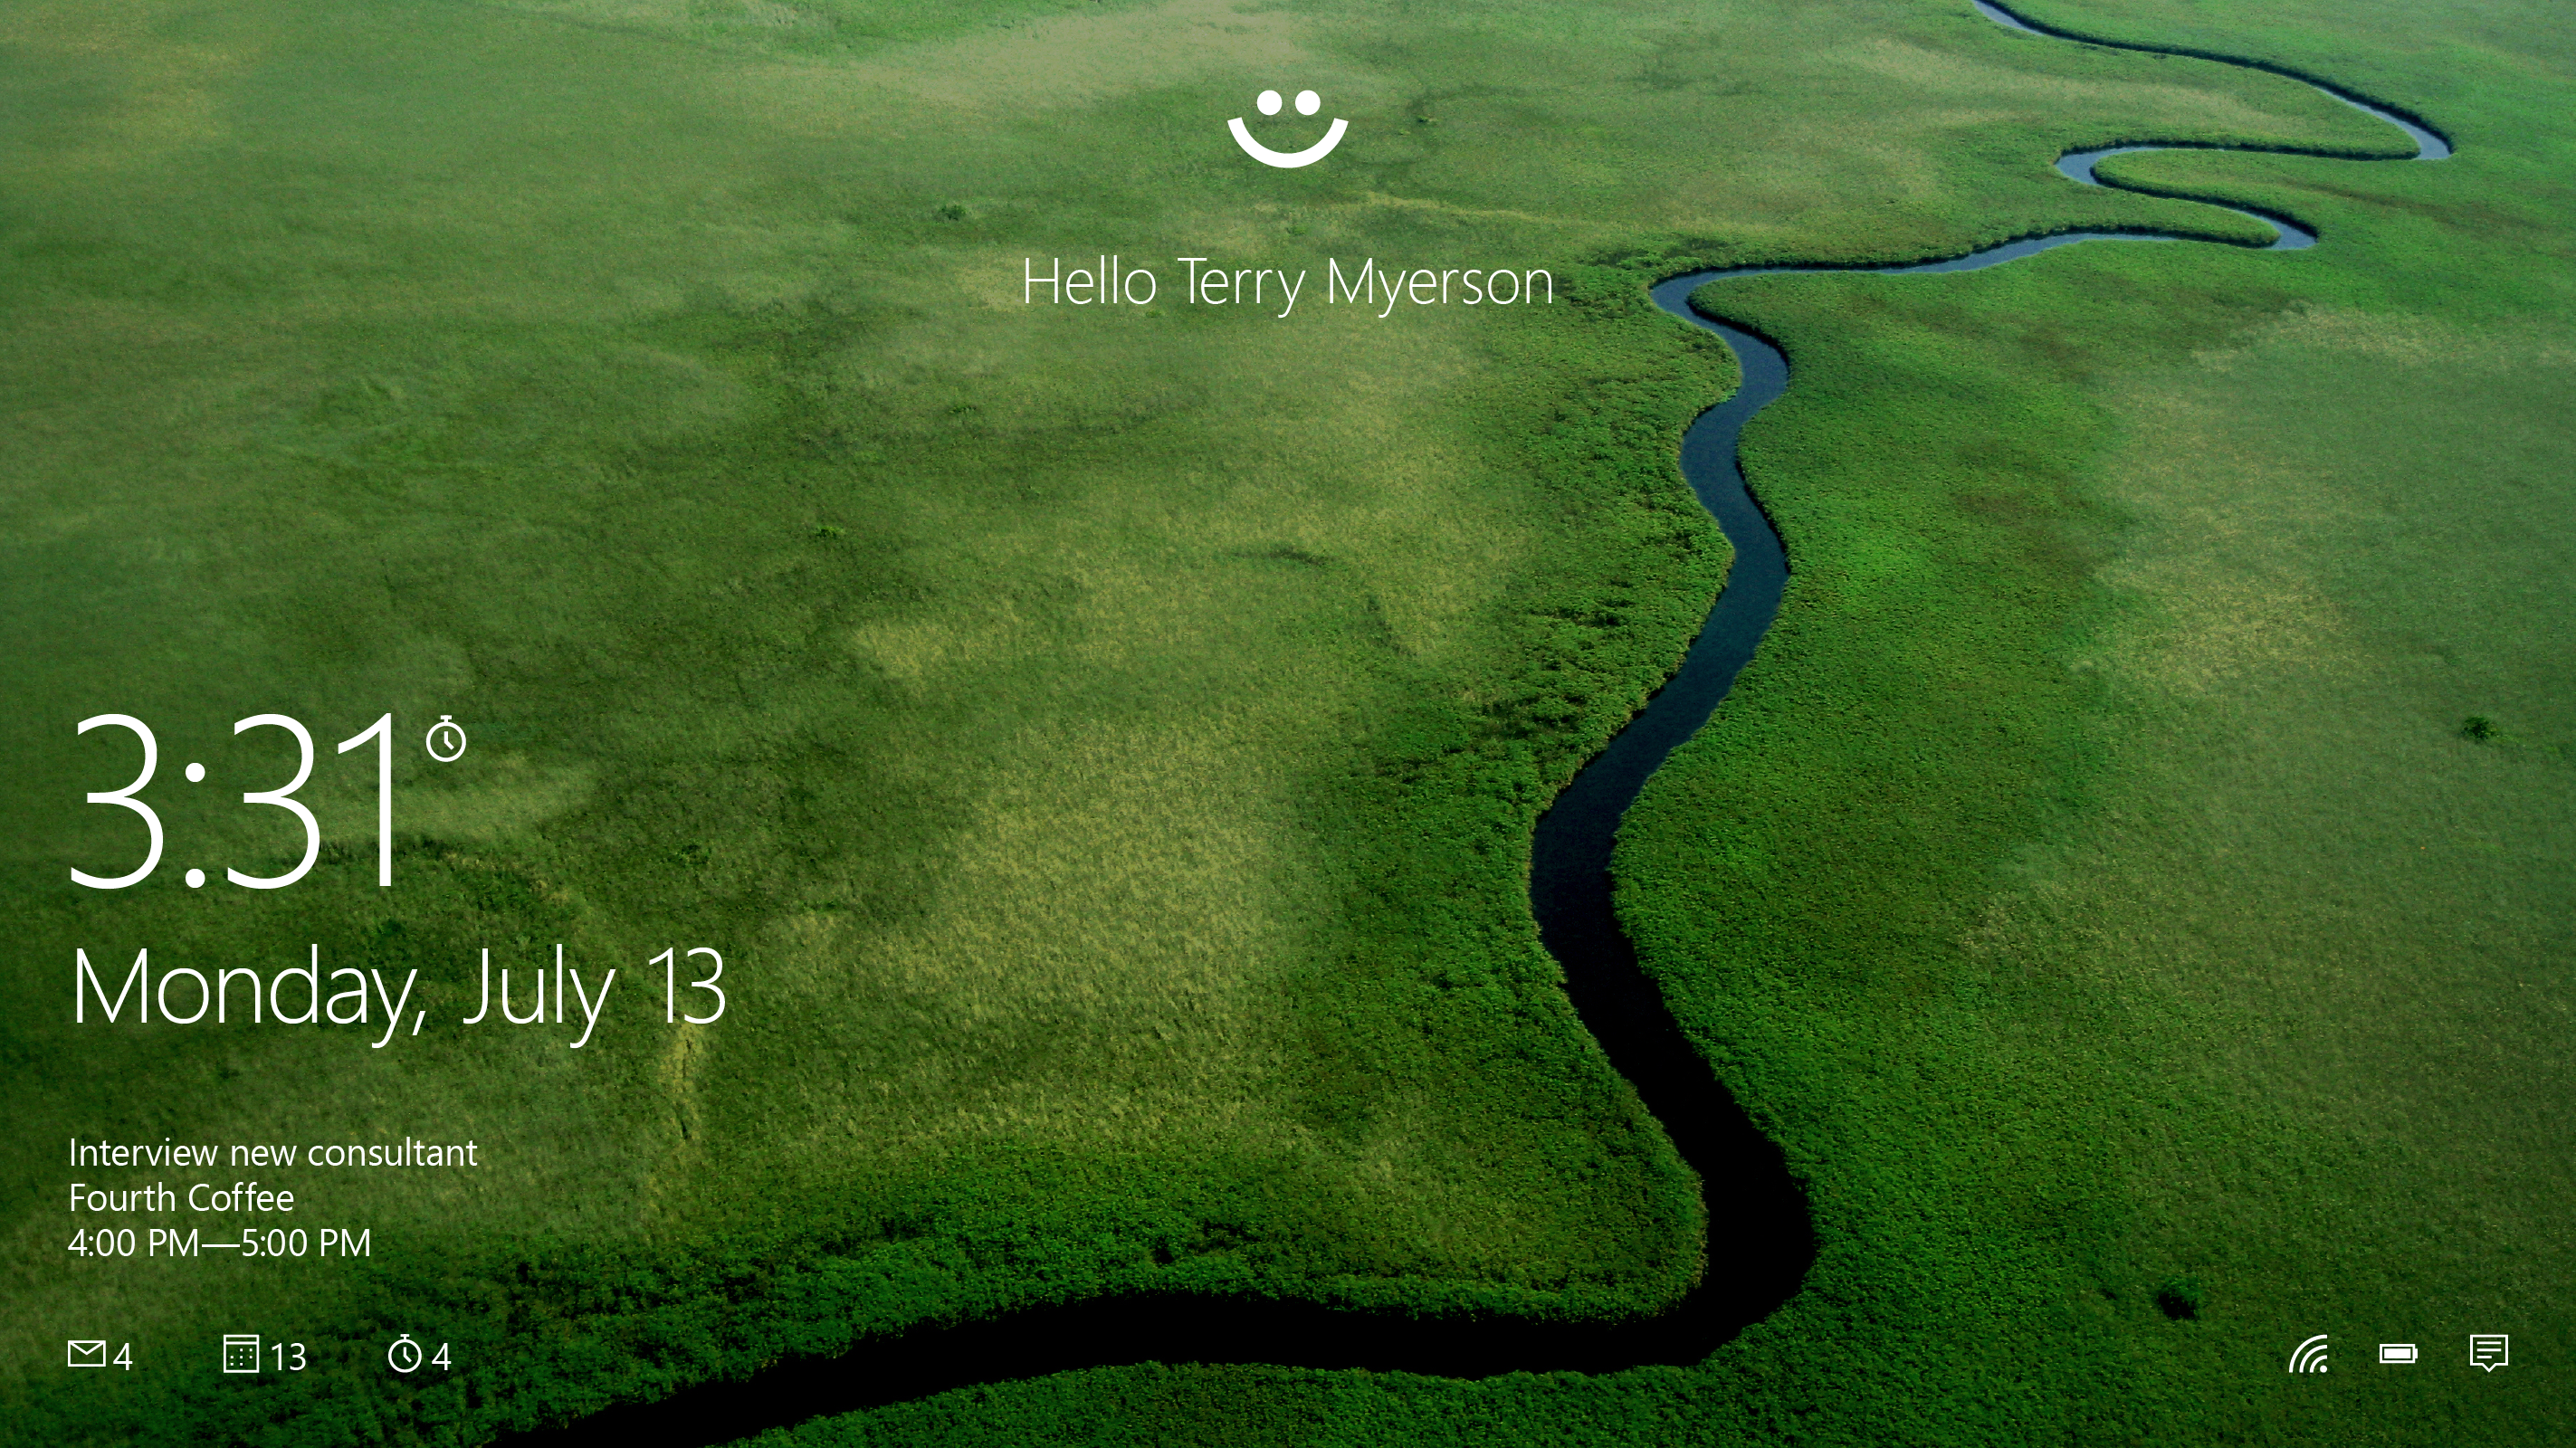 7 smart features to expect from Windows 10 - Image 8